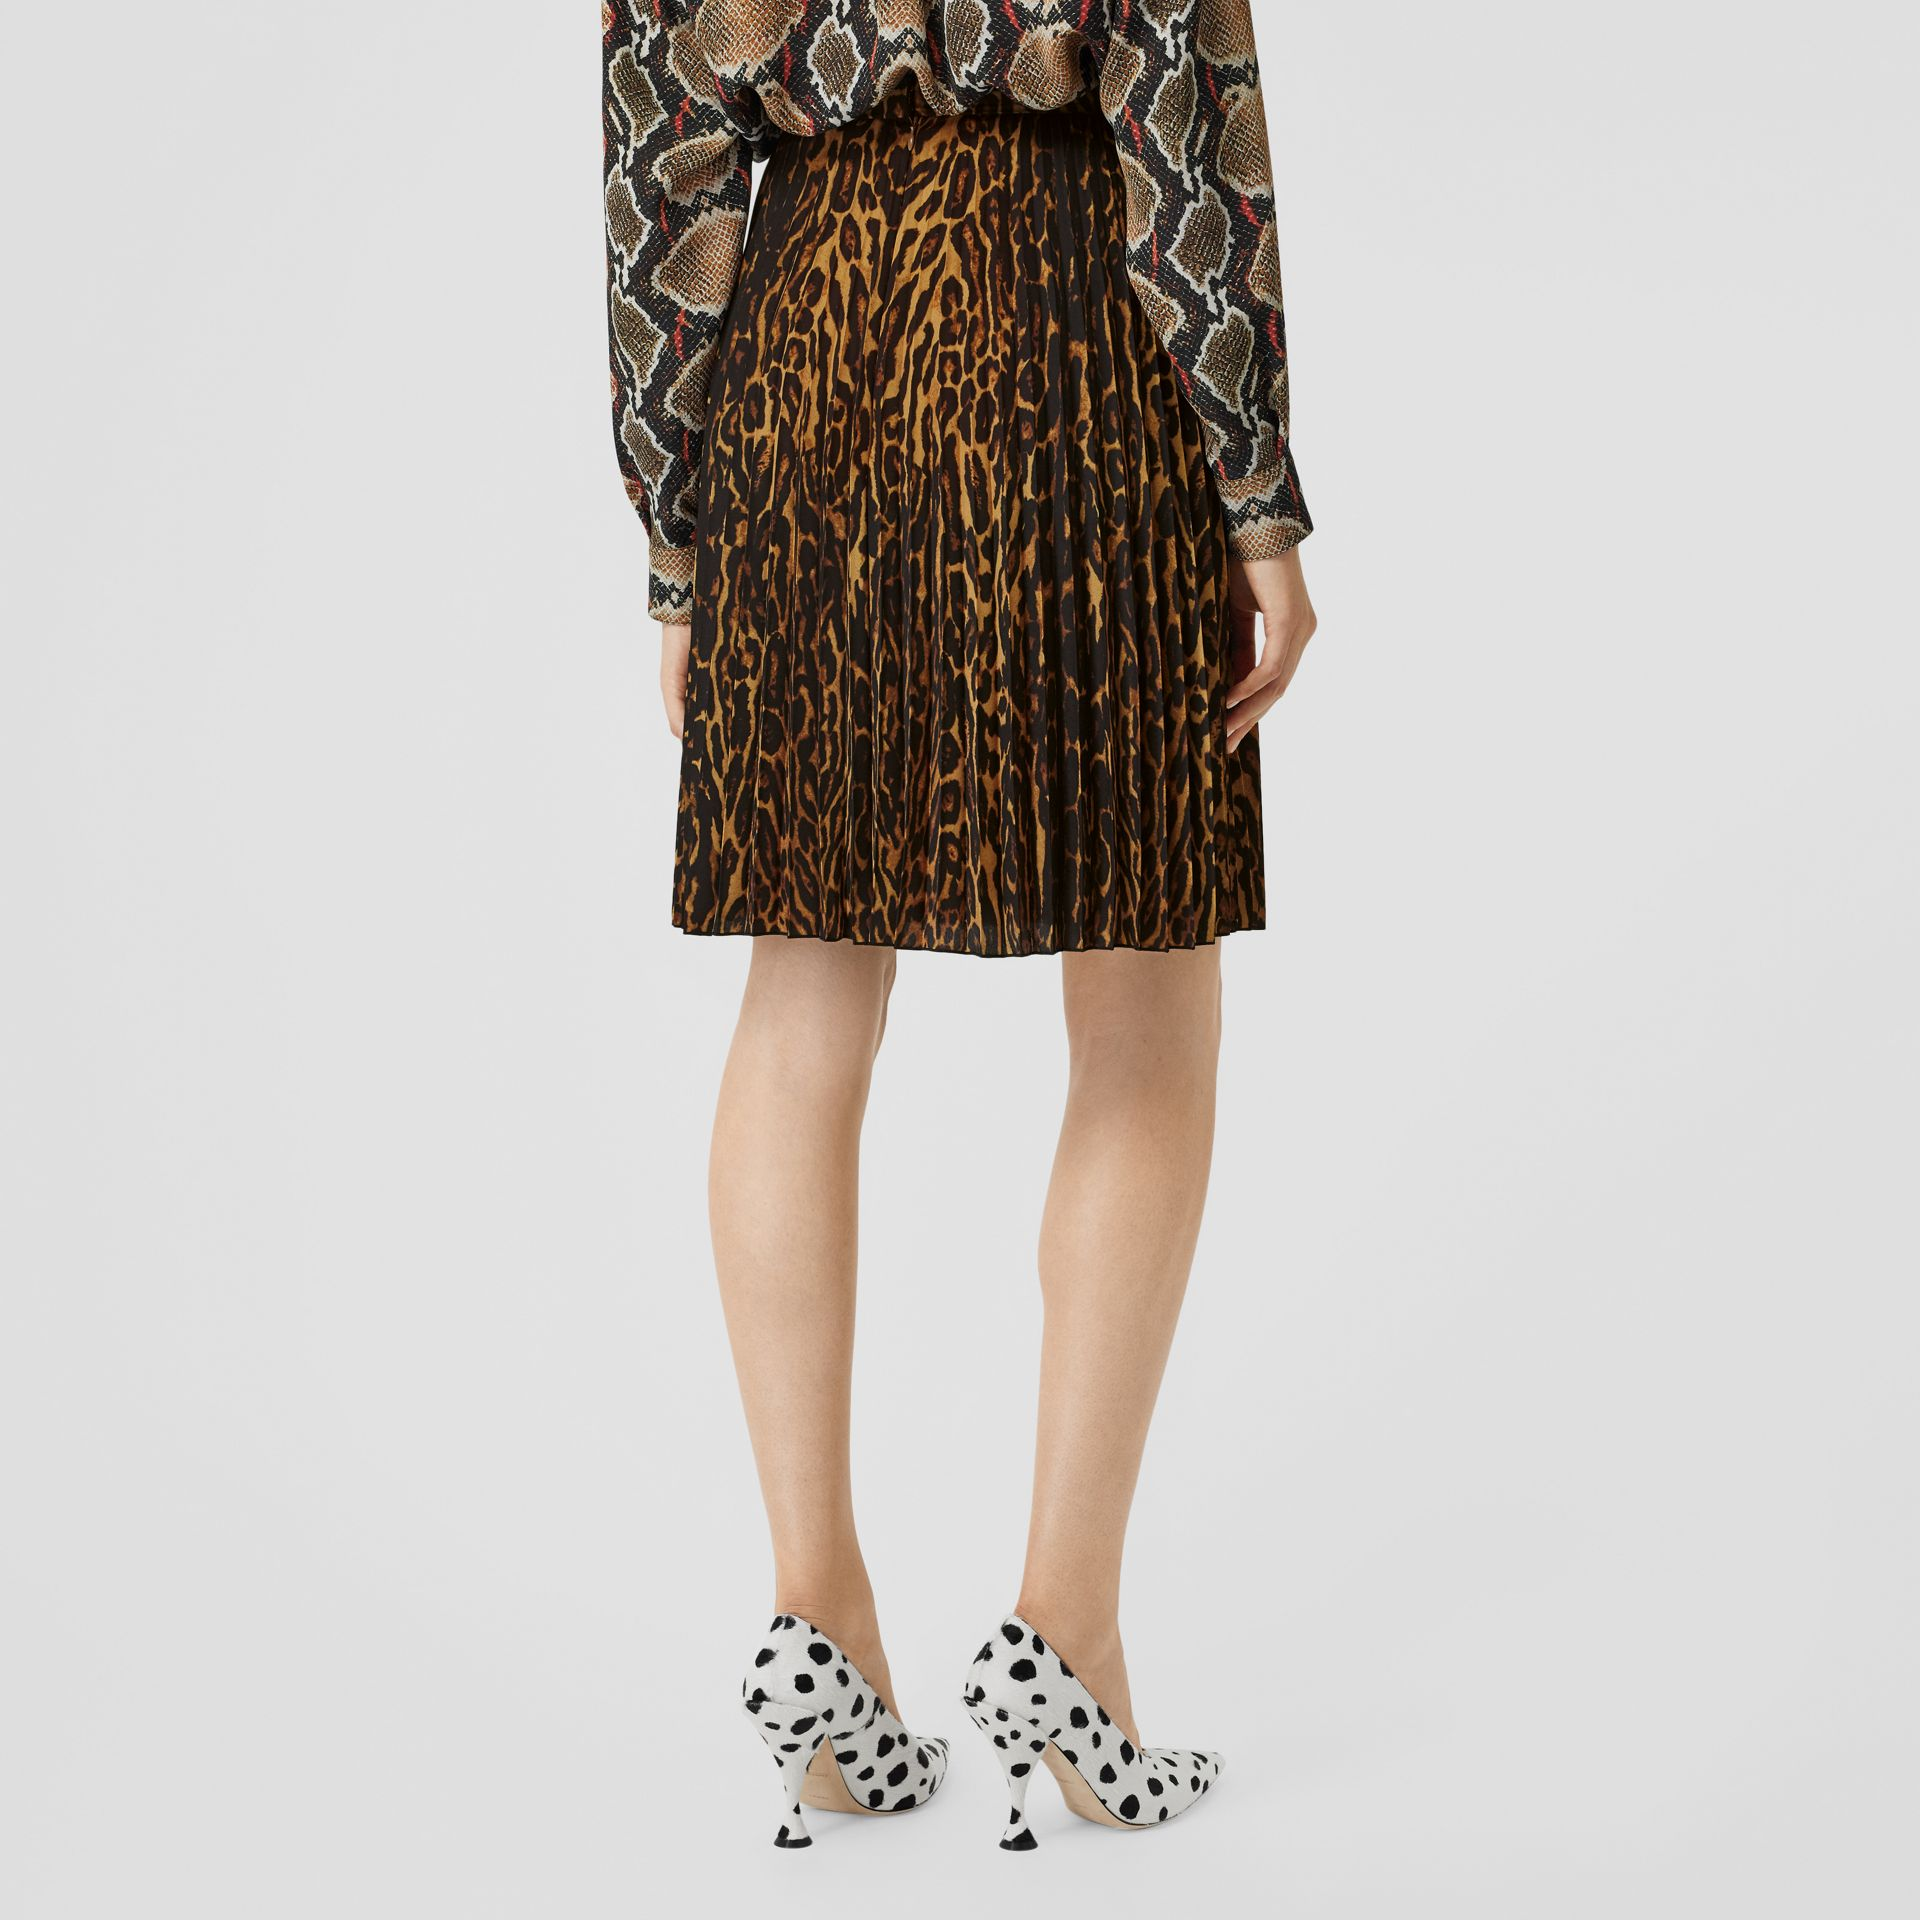 Leopard Print Pleated Skirt in Dark Mustard - Women | Burberry United Kingdom - gallery image 2